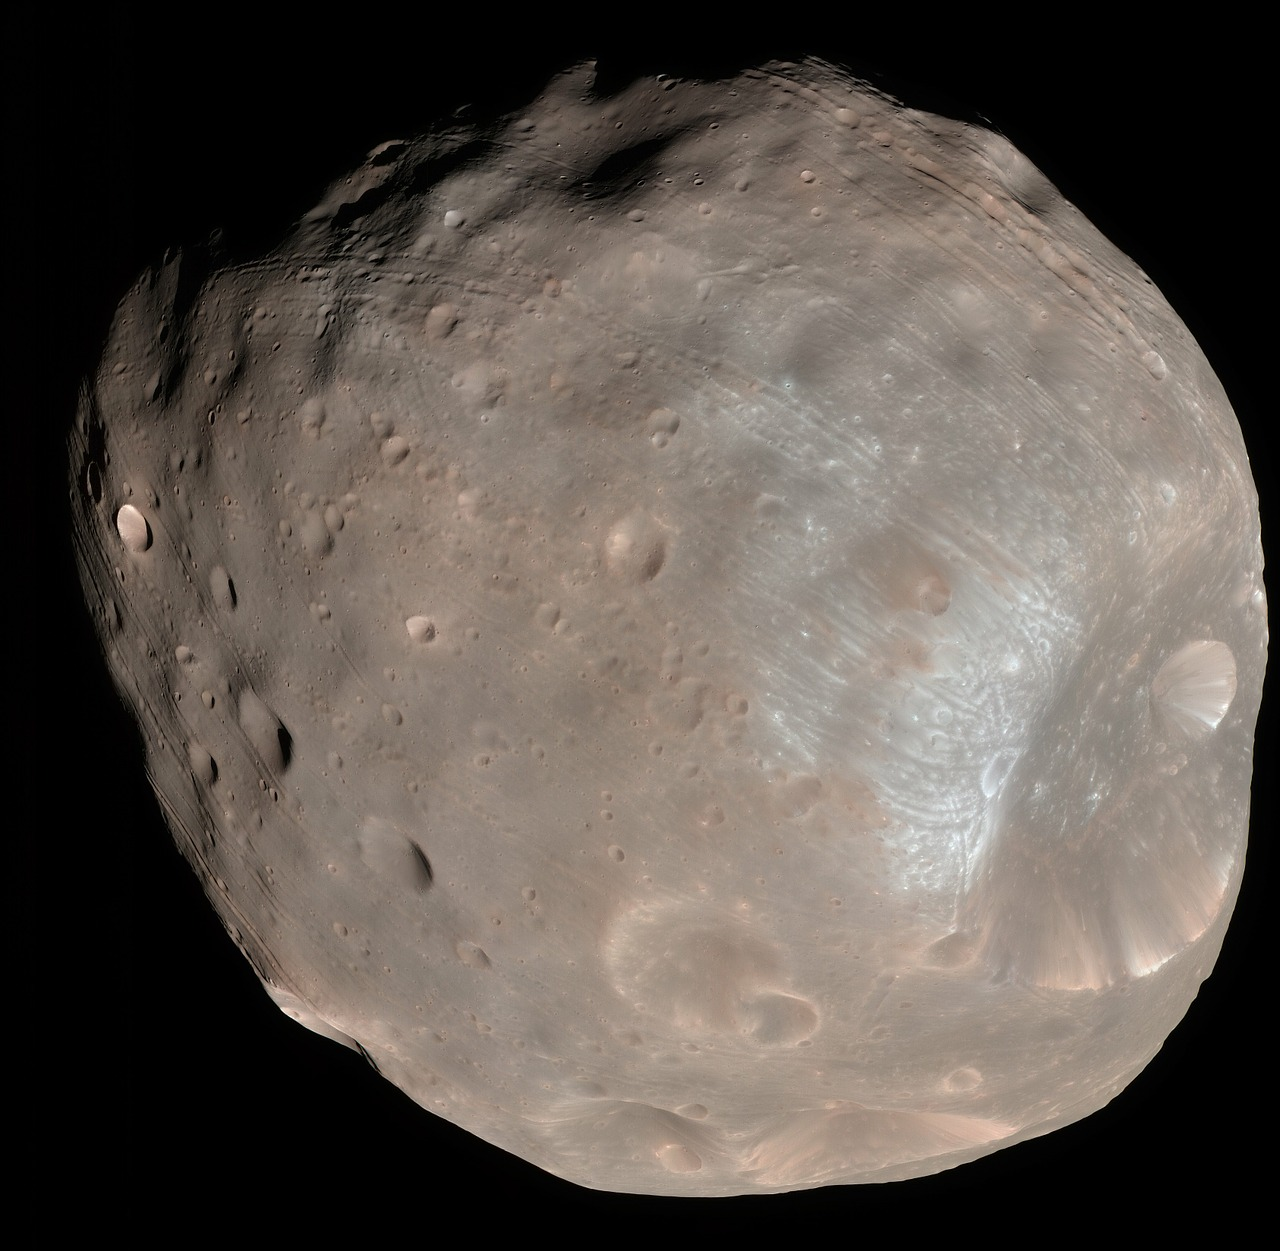 phobos,moon,mars i,natural satellite,planet mars,mars,planet,space,universe,all,night sky,sky,astronautics,nasa,space travel,aviation,astronomy,science,research,free pictures, free photos, free images, royalty free, free illustrations, public domain